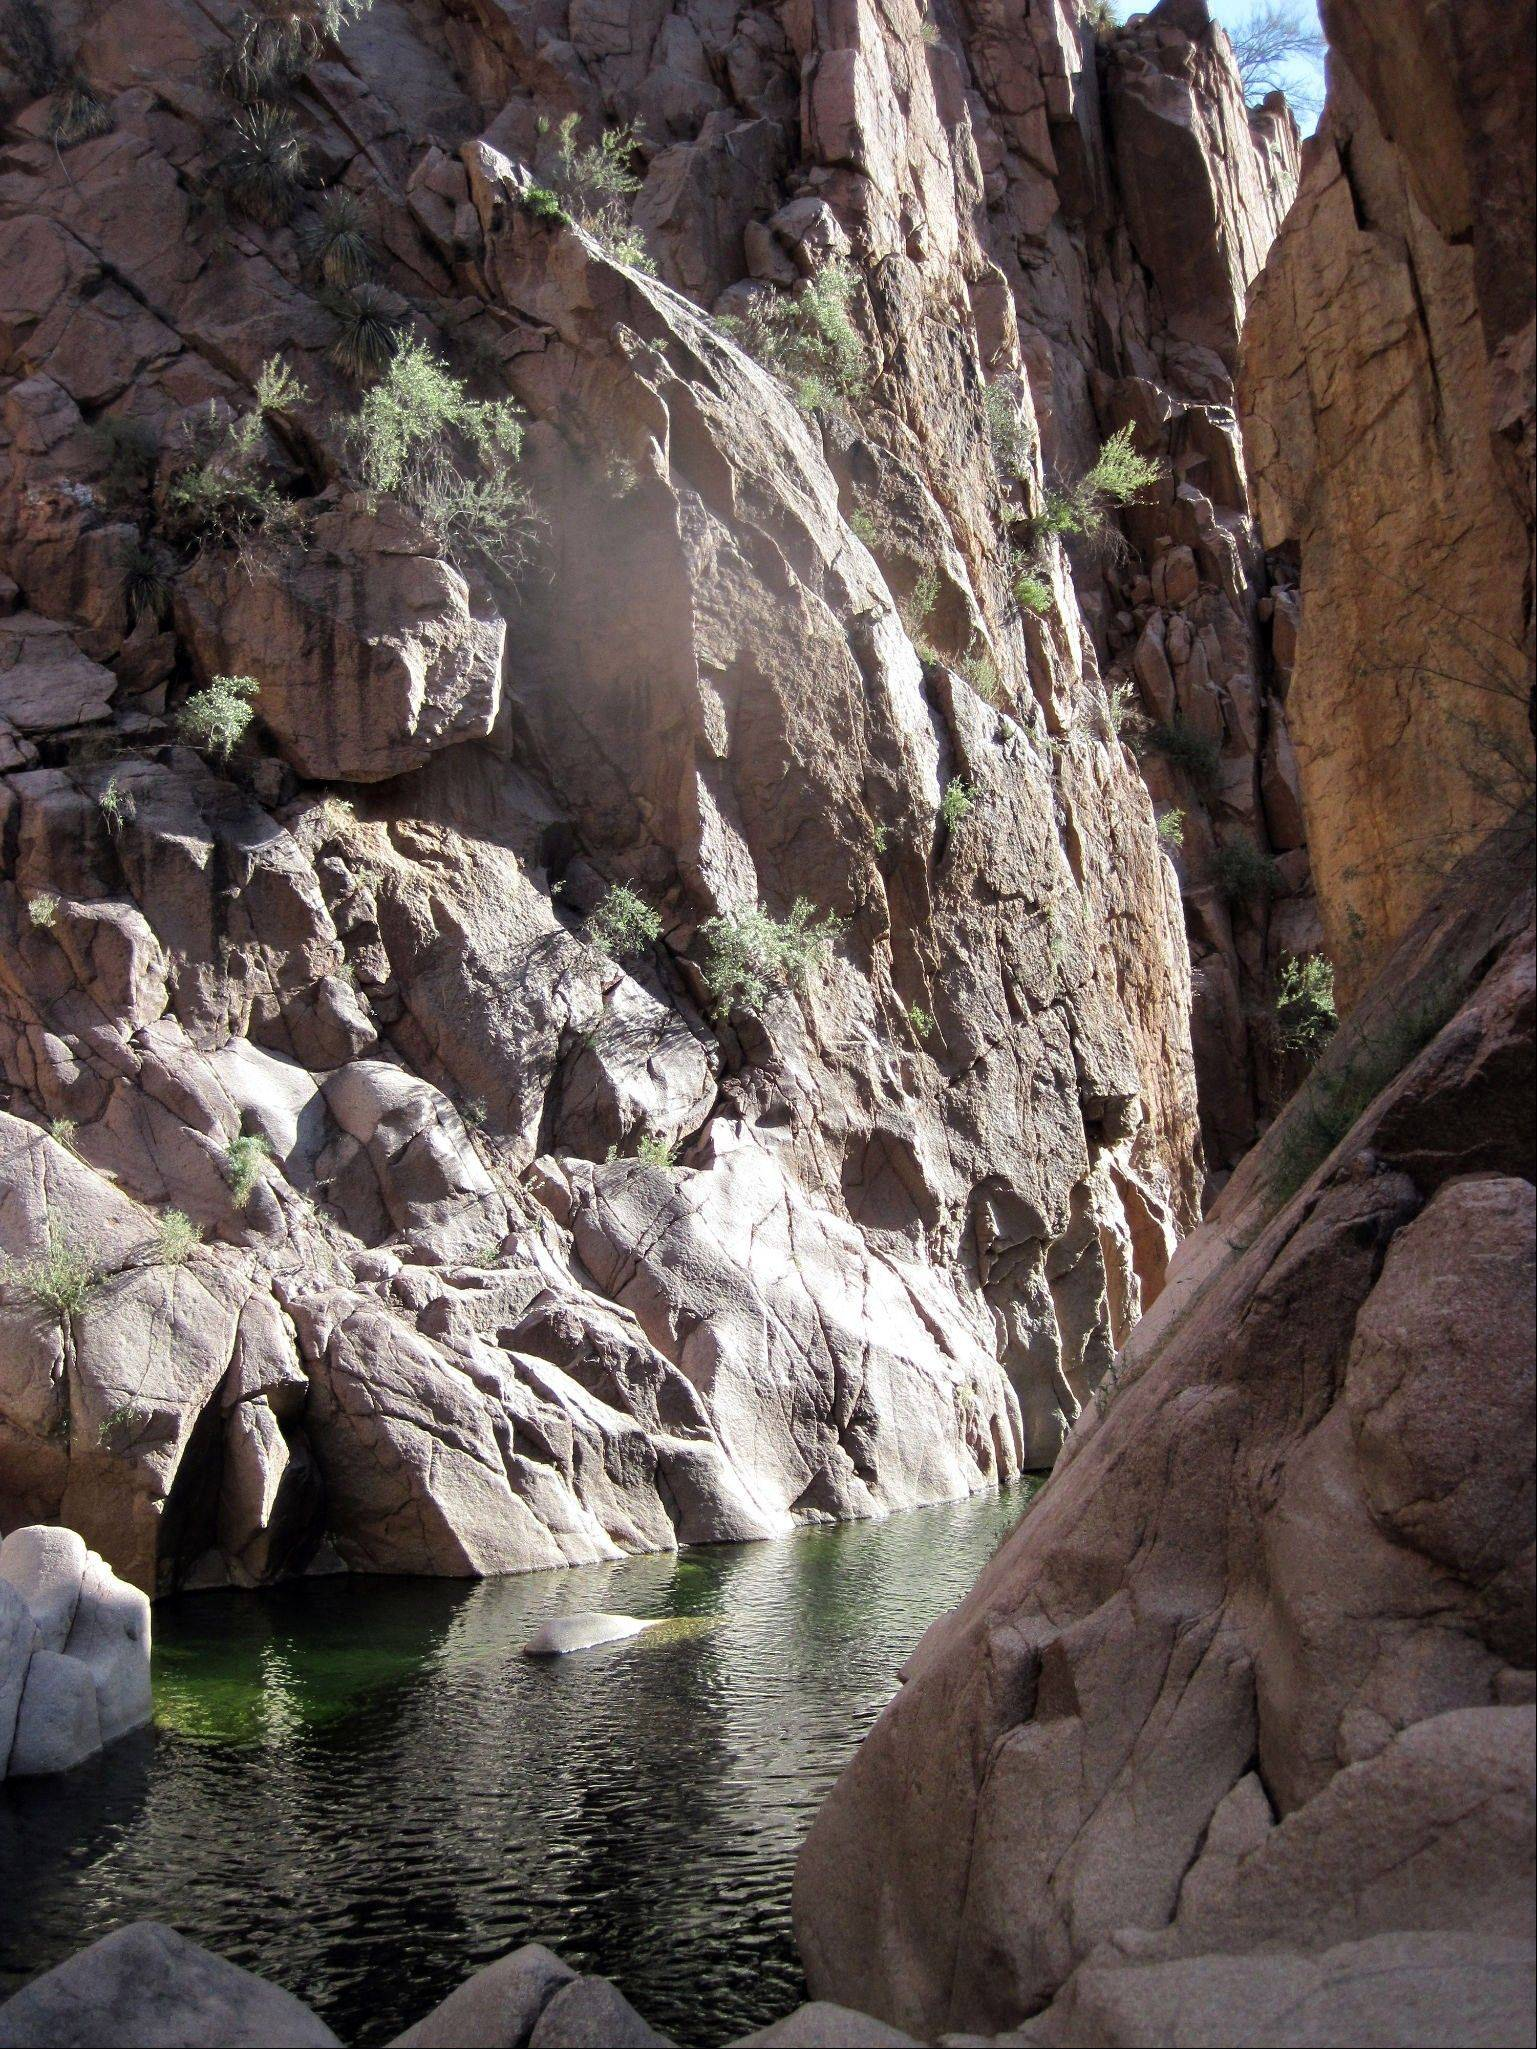 Salome Creek in Salome Canyon is a popular destination for canyoneering.